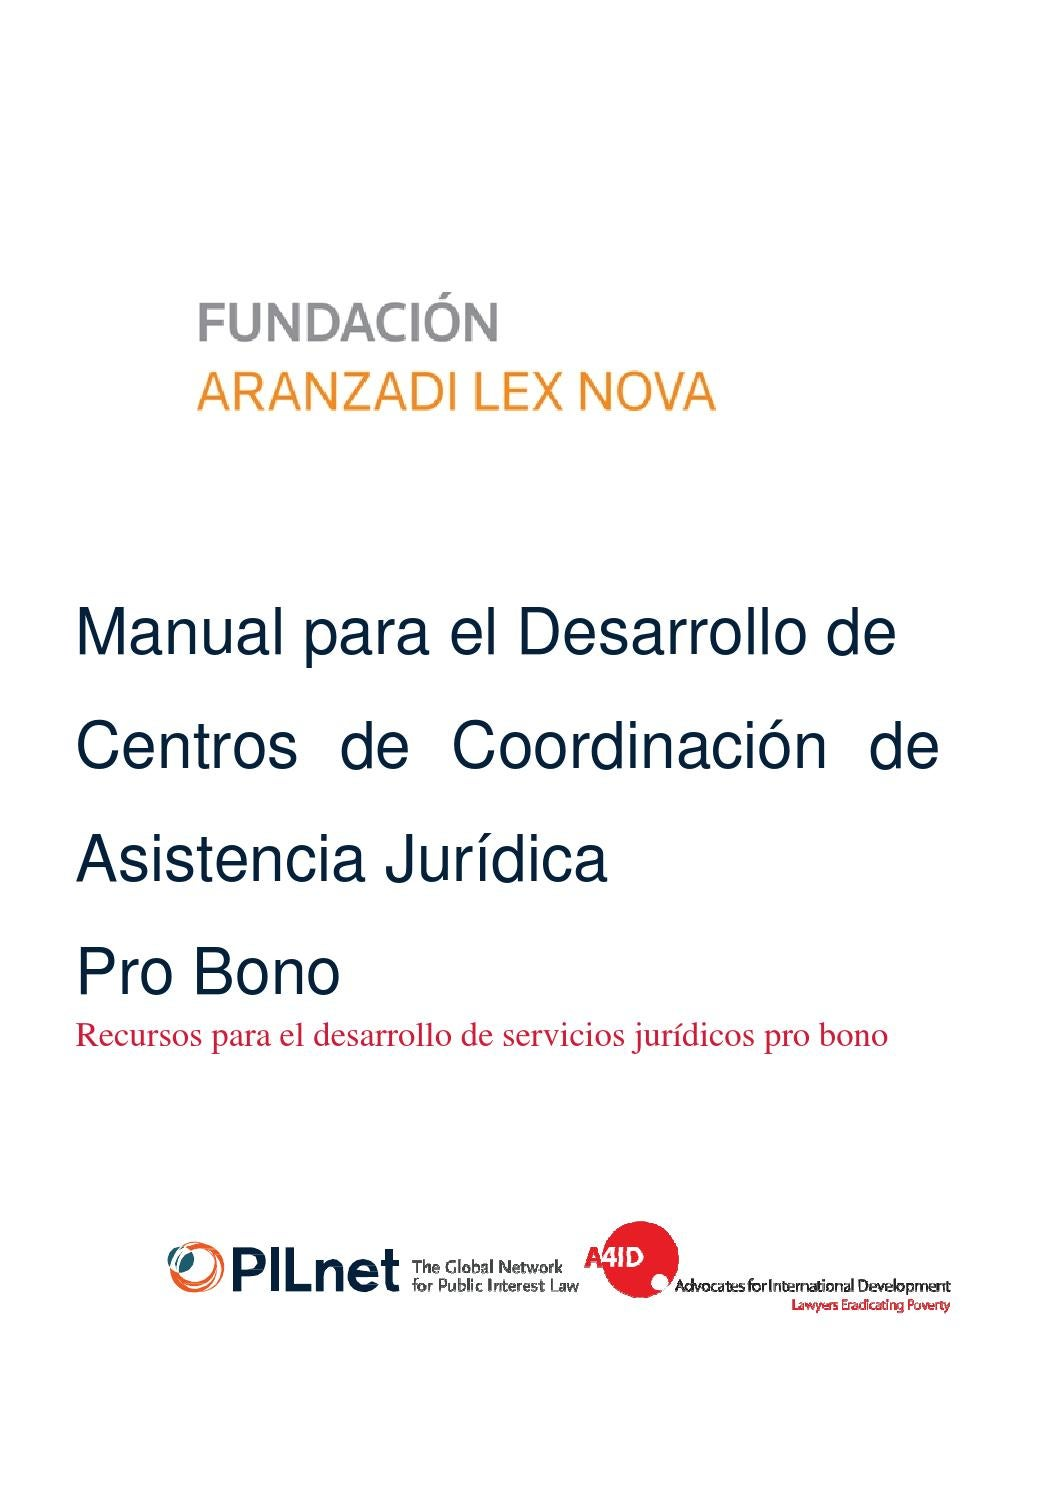 Pilnet probono manual 11 01 2011 final web es logo by ...